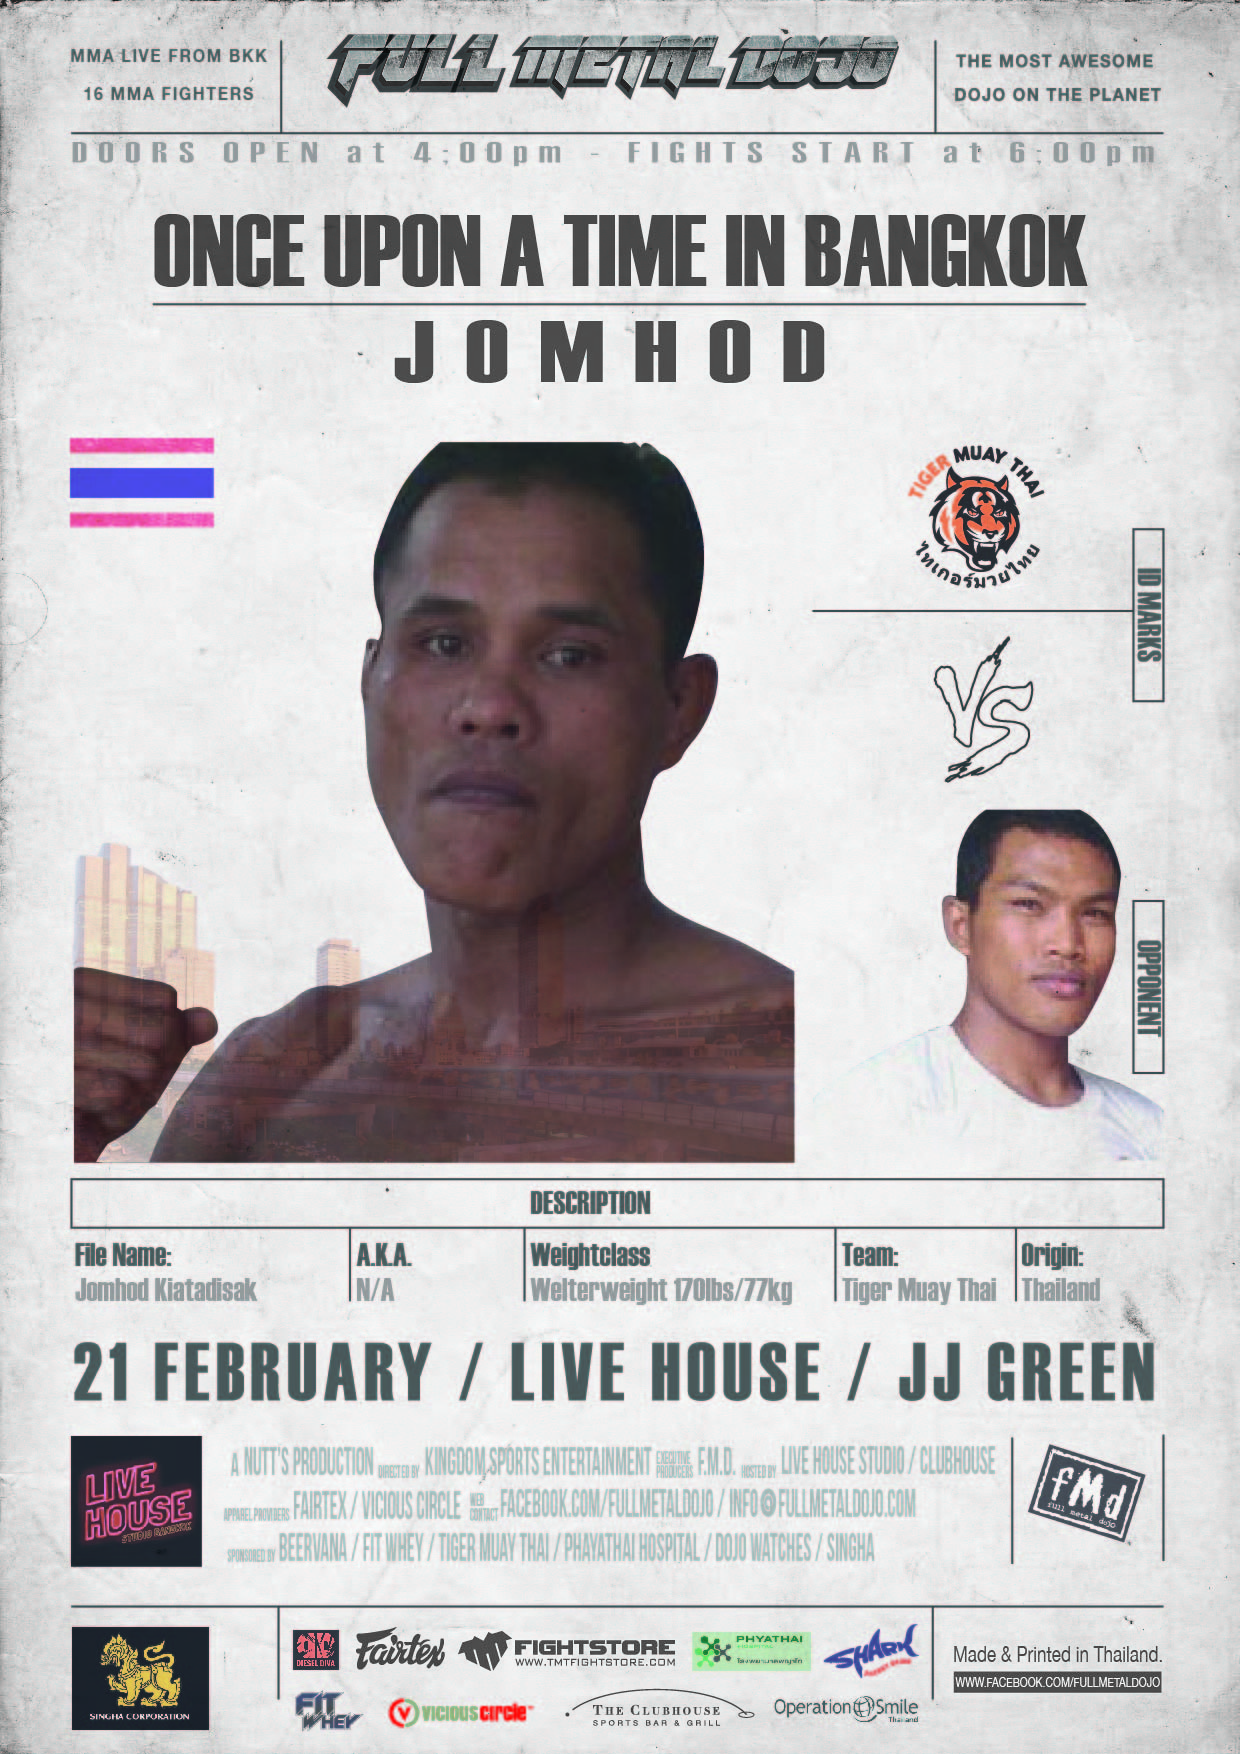 Jomhod Kiatadisak FMD4 MMA Fighter